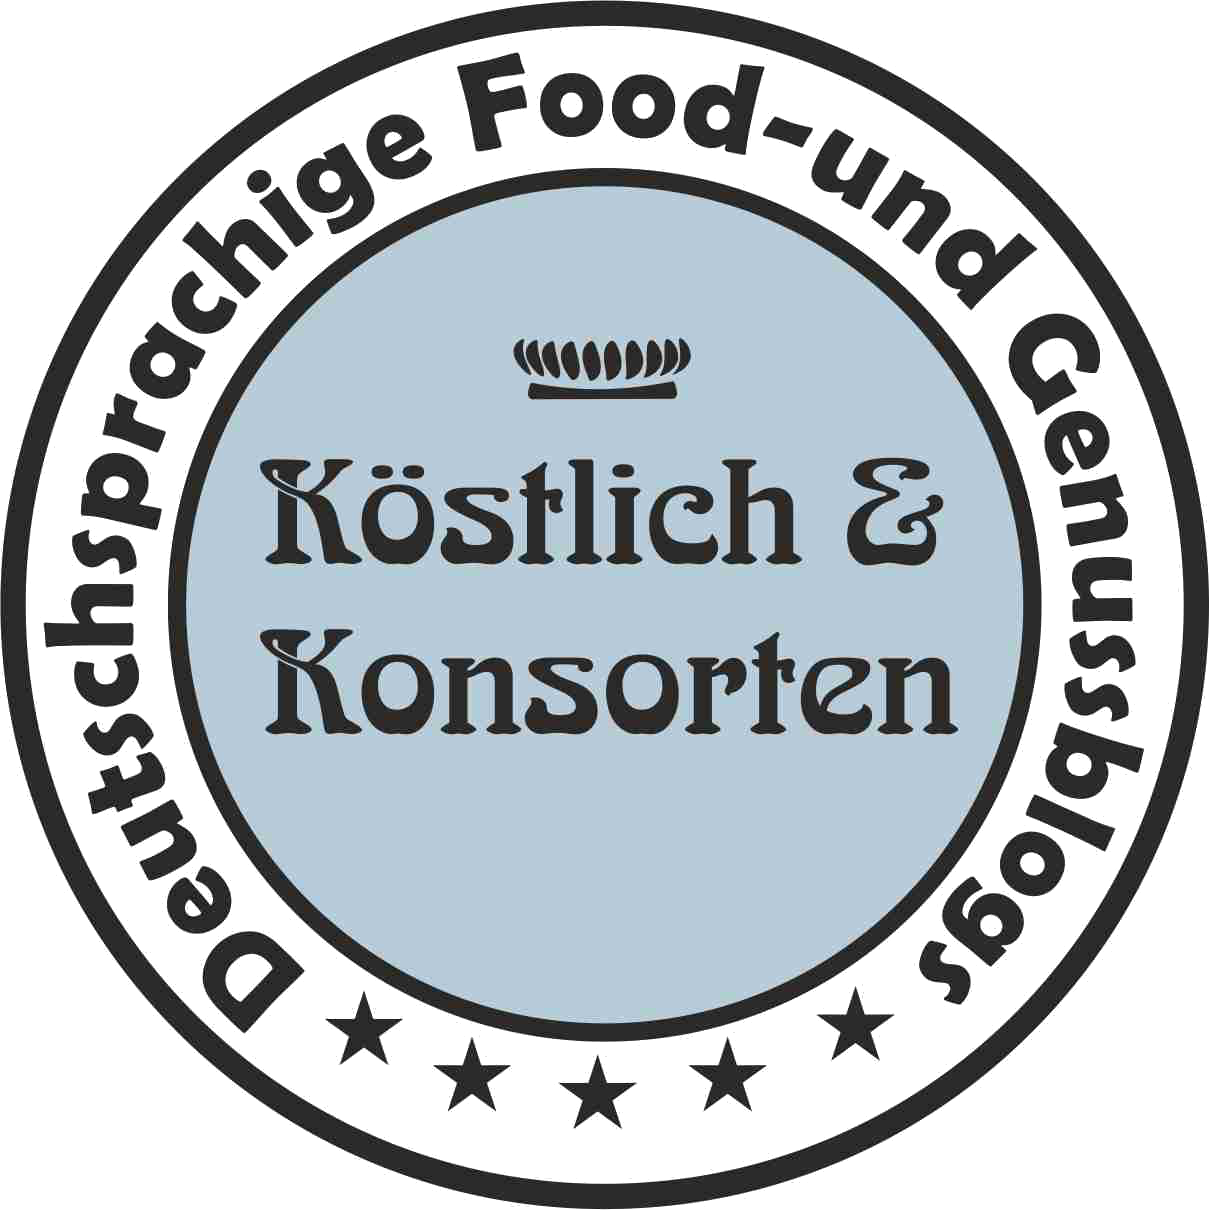 Kstlich & Konsorten